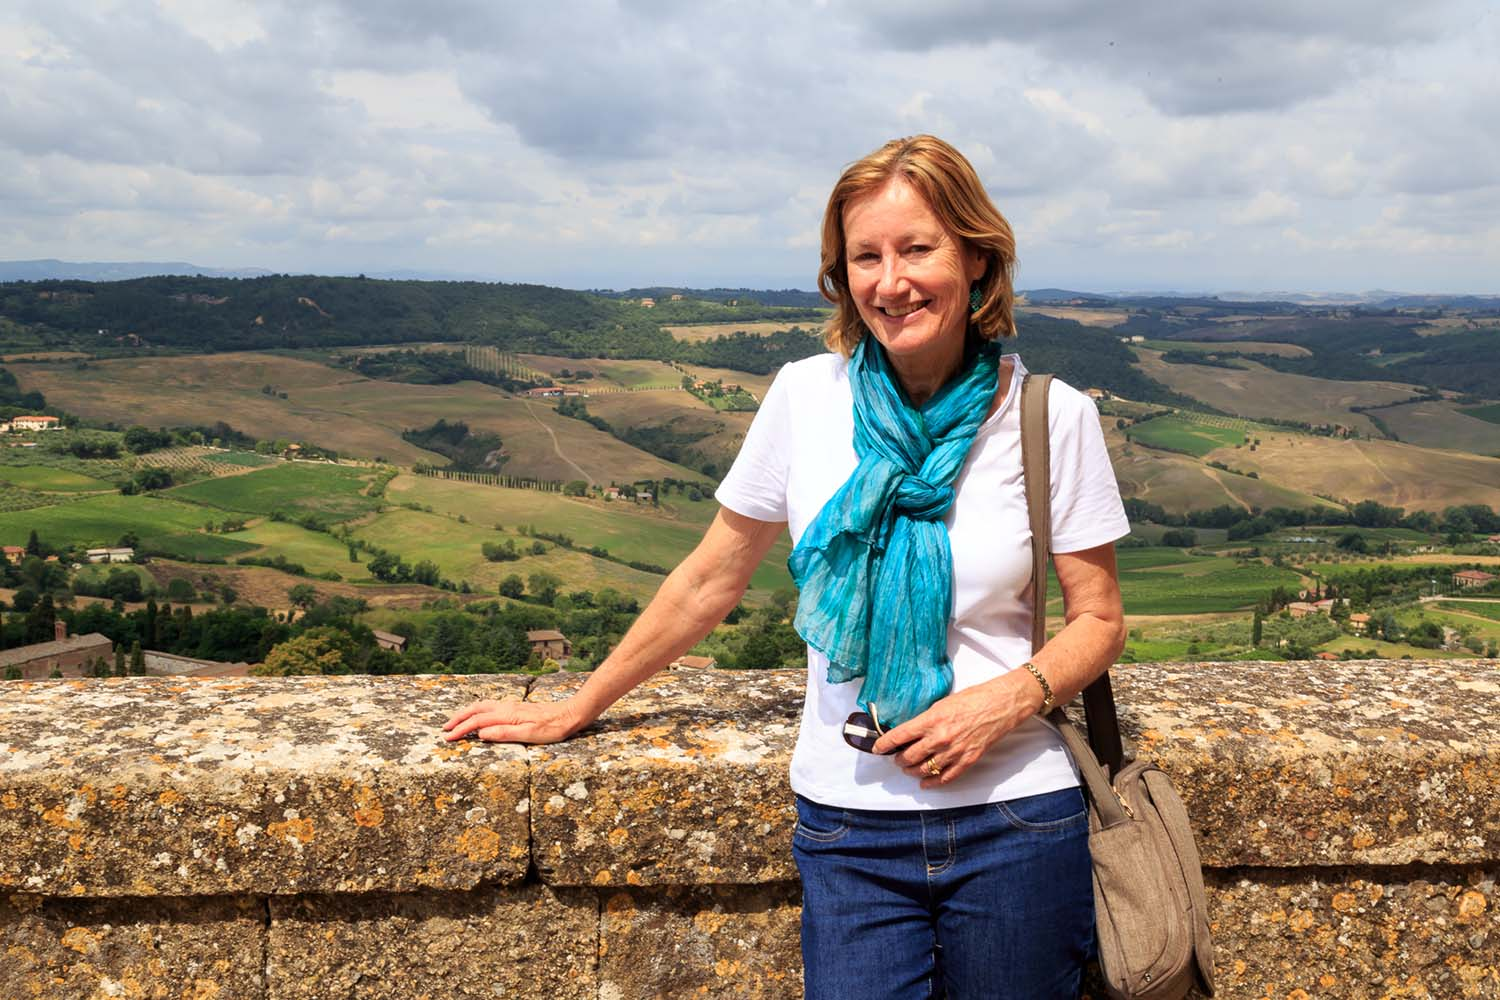 guest-reviews-best-tour-of-tuscany.jpg